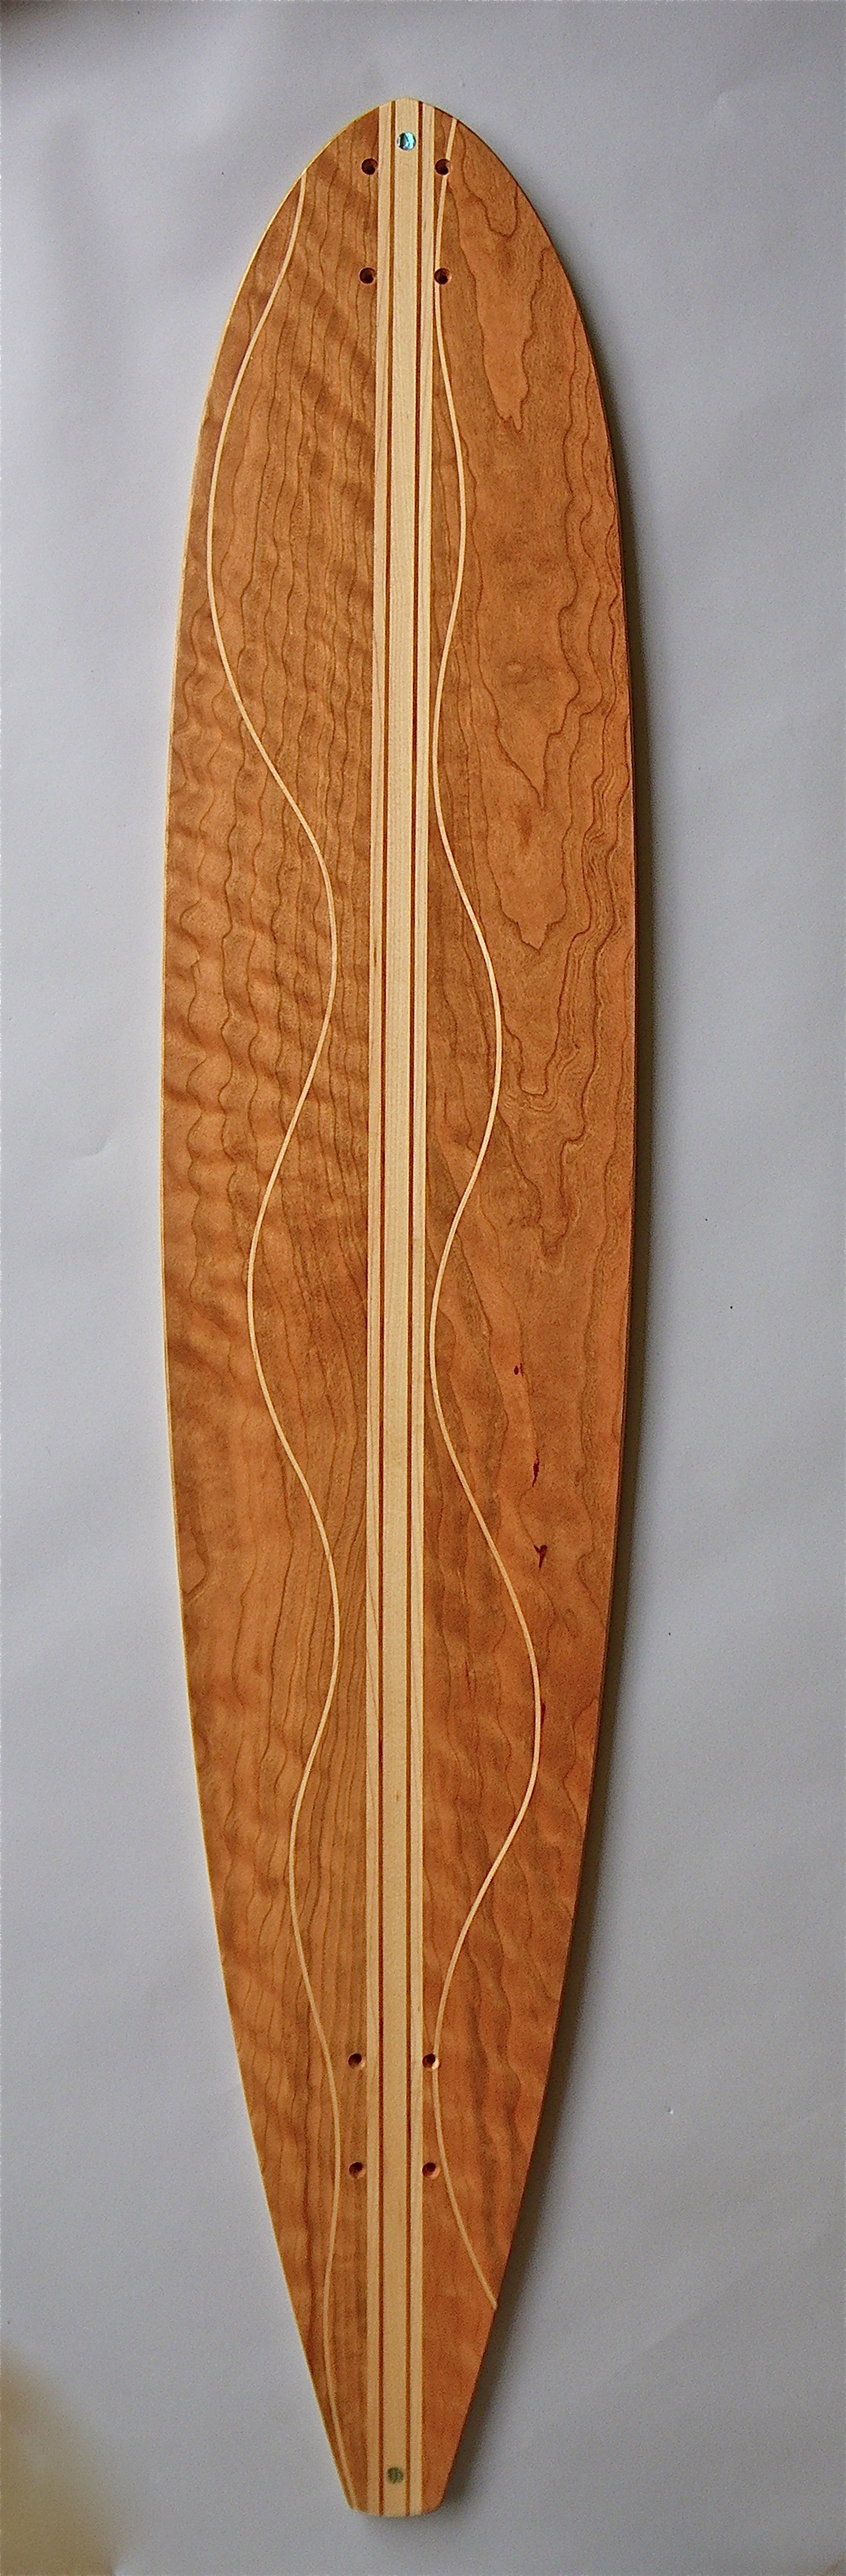 "The Big Kahuna!! 10"" Wide and a full 54"" long.  Curly Cherry and Maple Stringer with Maple Flowlines"